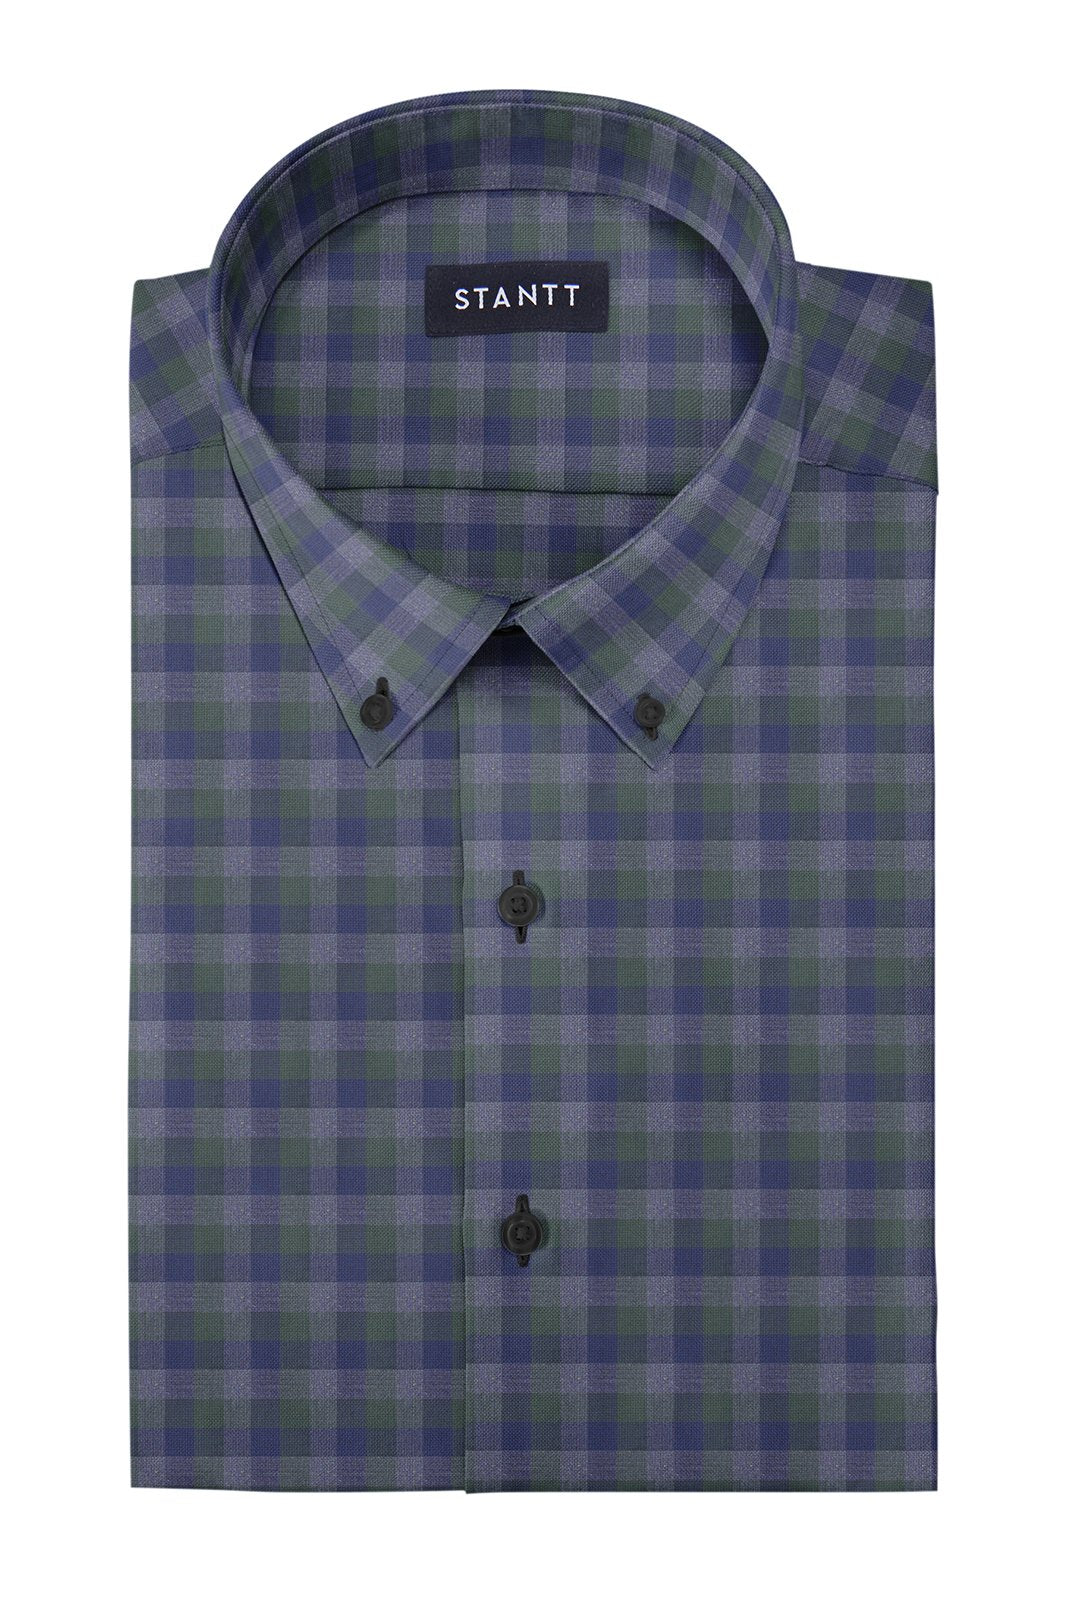 Hunter Green Charcoal Multi Check: Button-Down Collar, Barrel Cuff